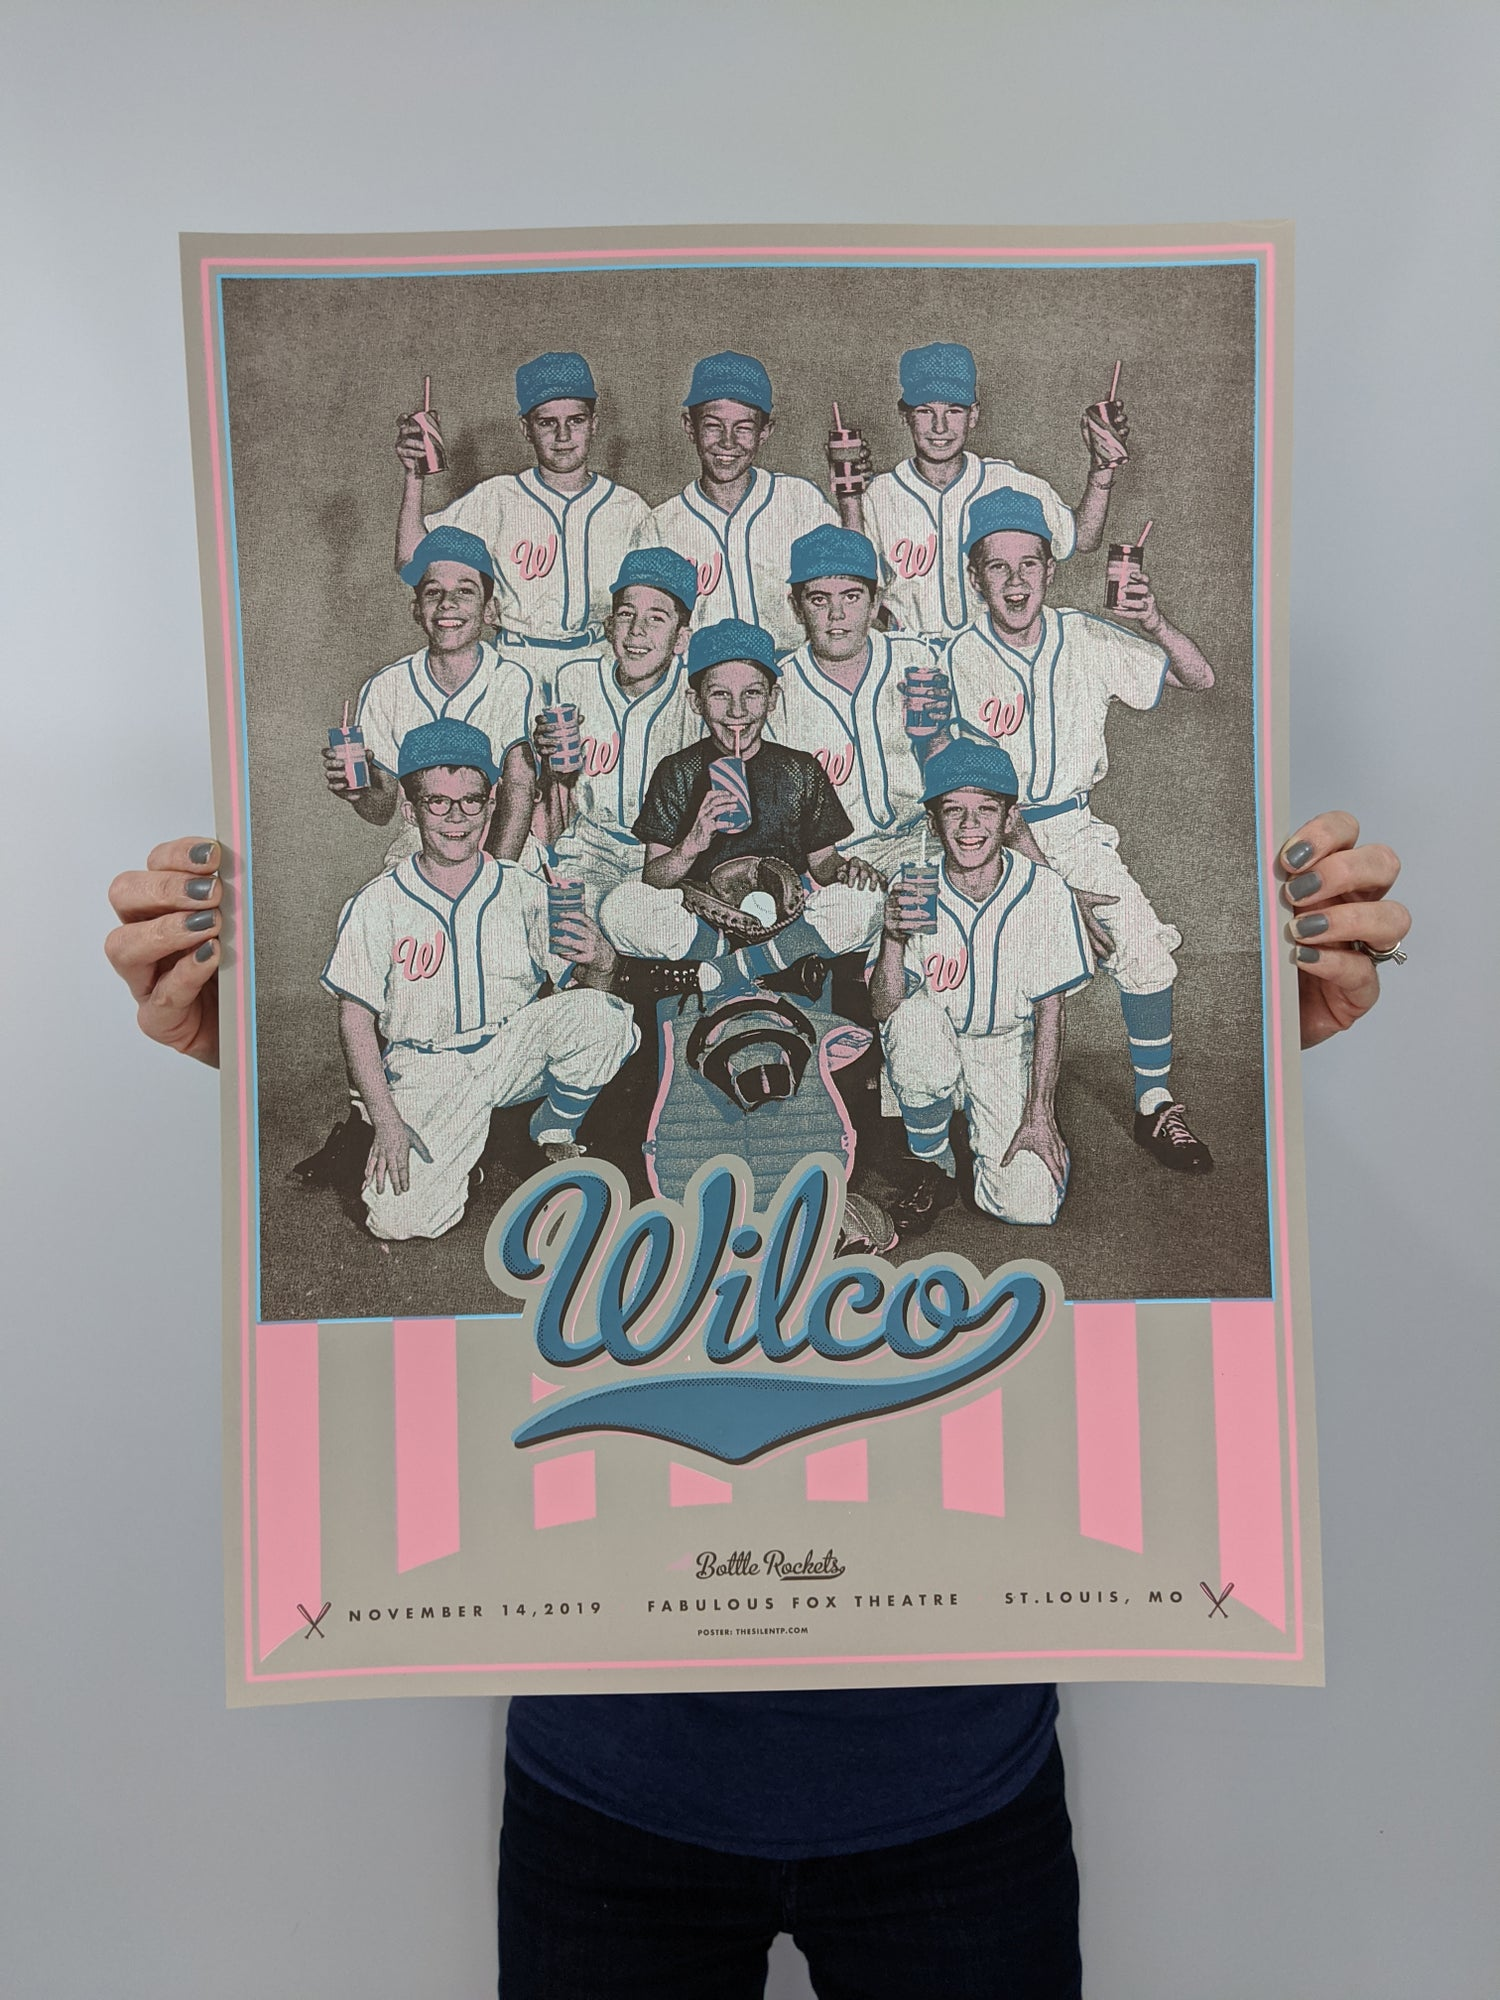 Image of Wilco, 'Team Players' poster, St. Louis, MO.